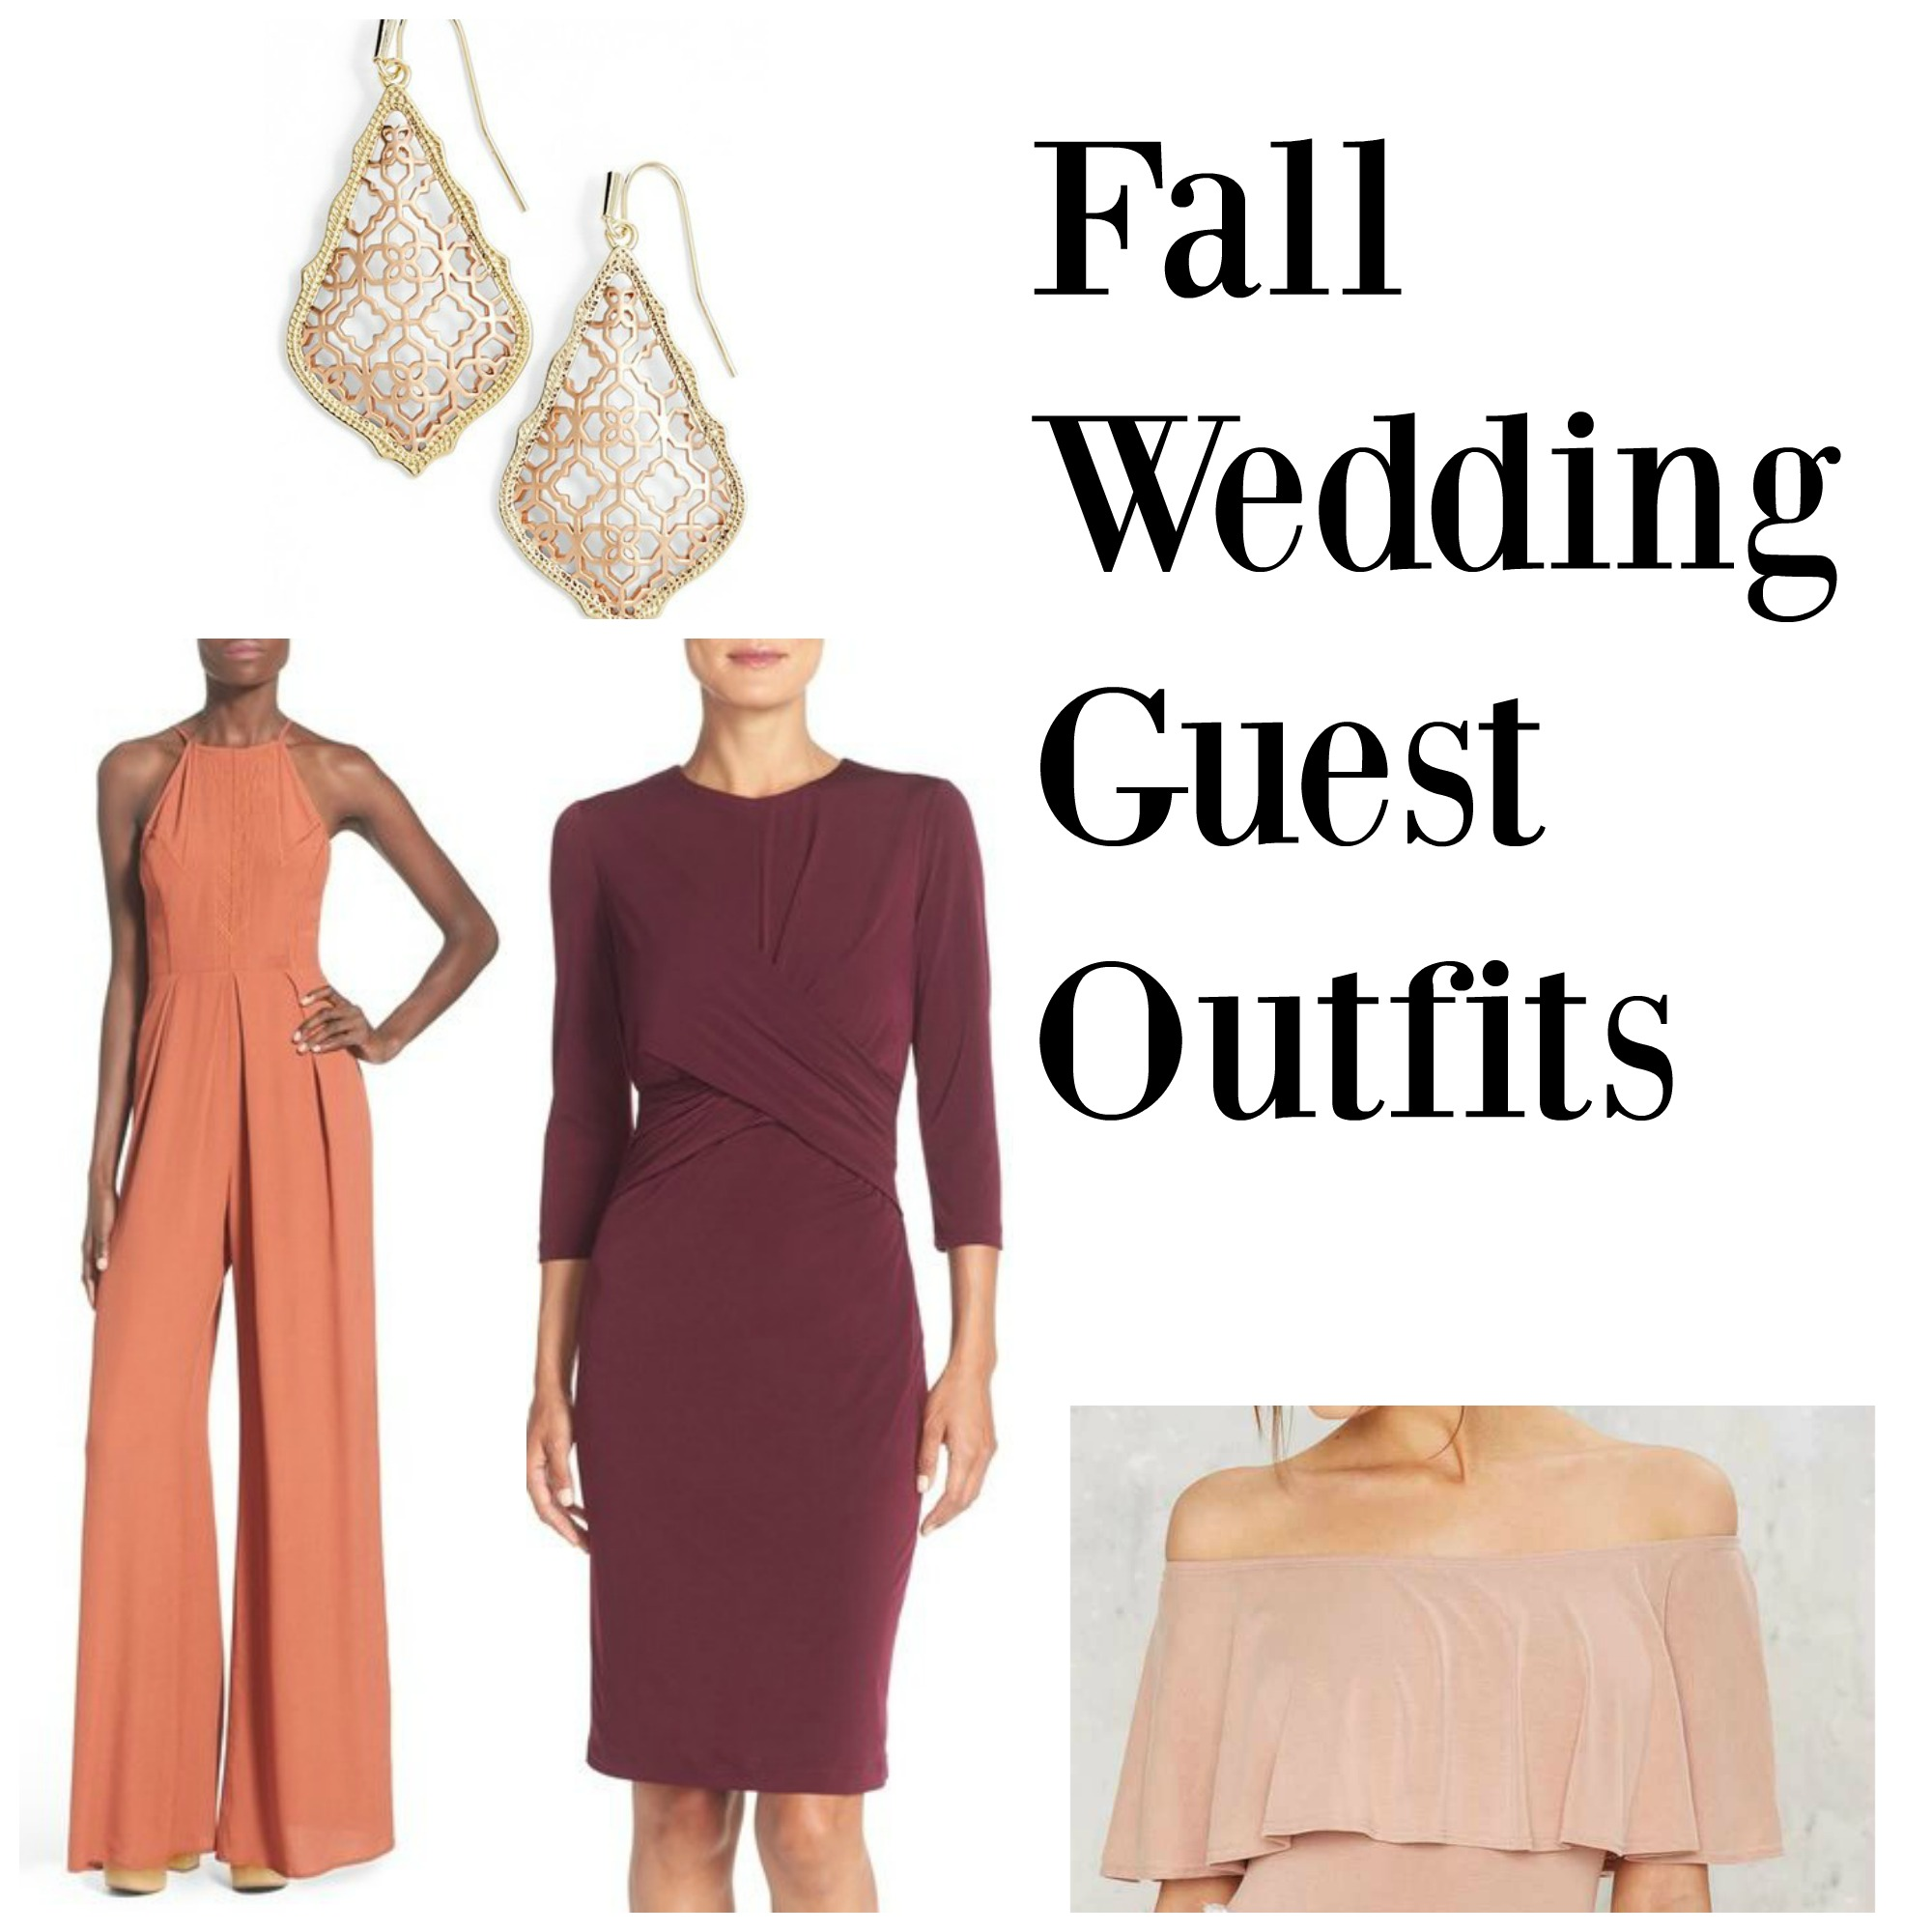 Fall wedding guest outfits fierce looks for Guest of wedding dresses fall